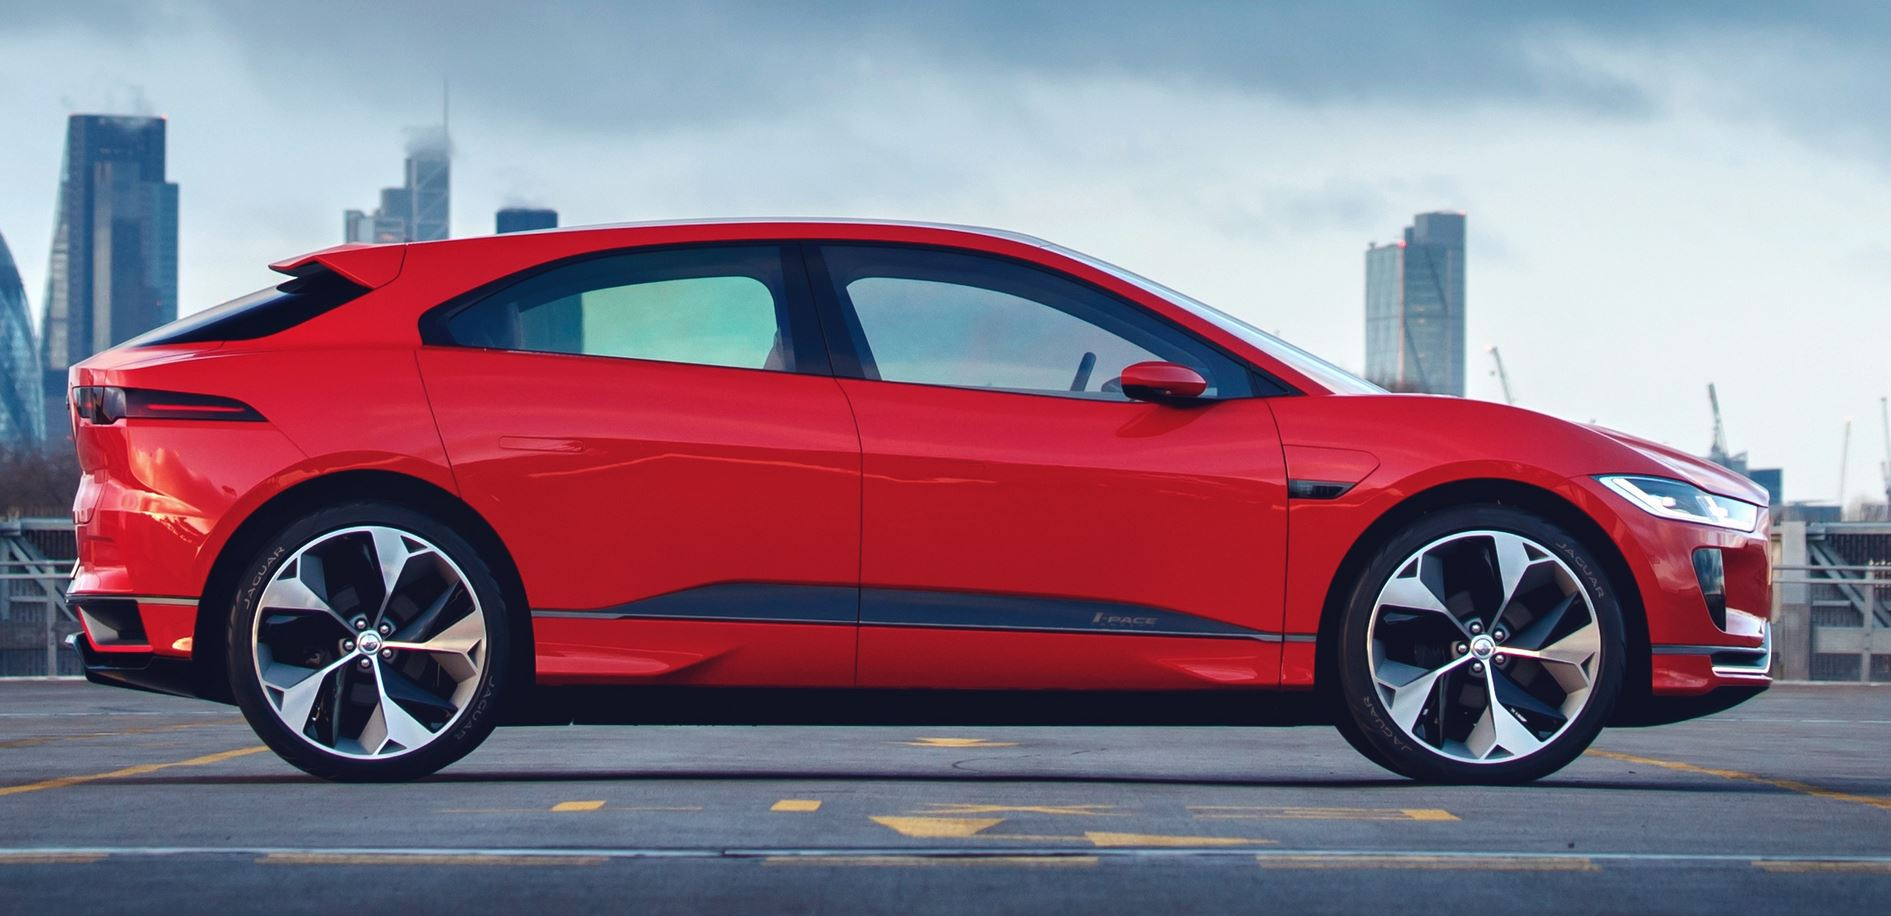 Jaguar IPace Concept Gets Sexy Red Paint for Geneva Debut